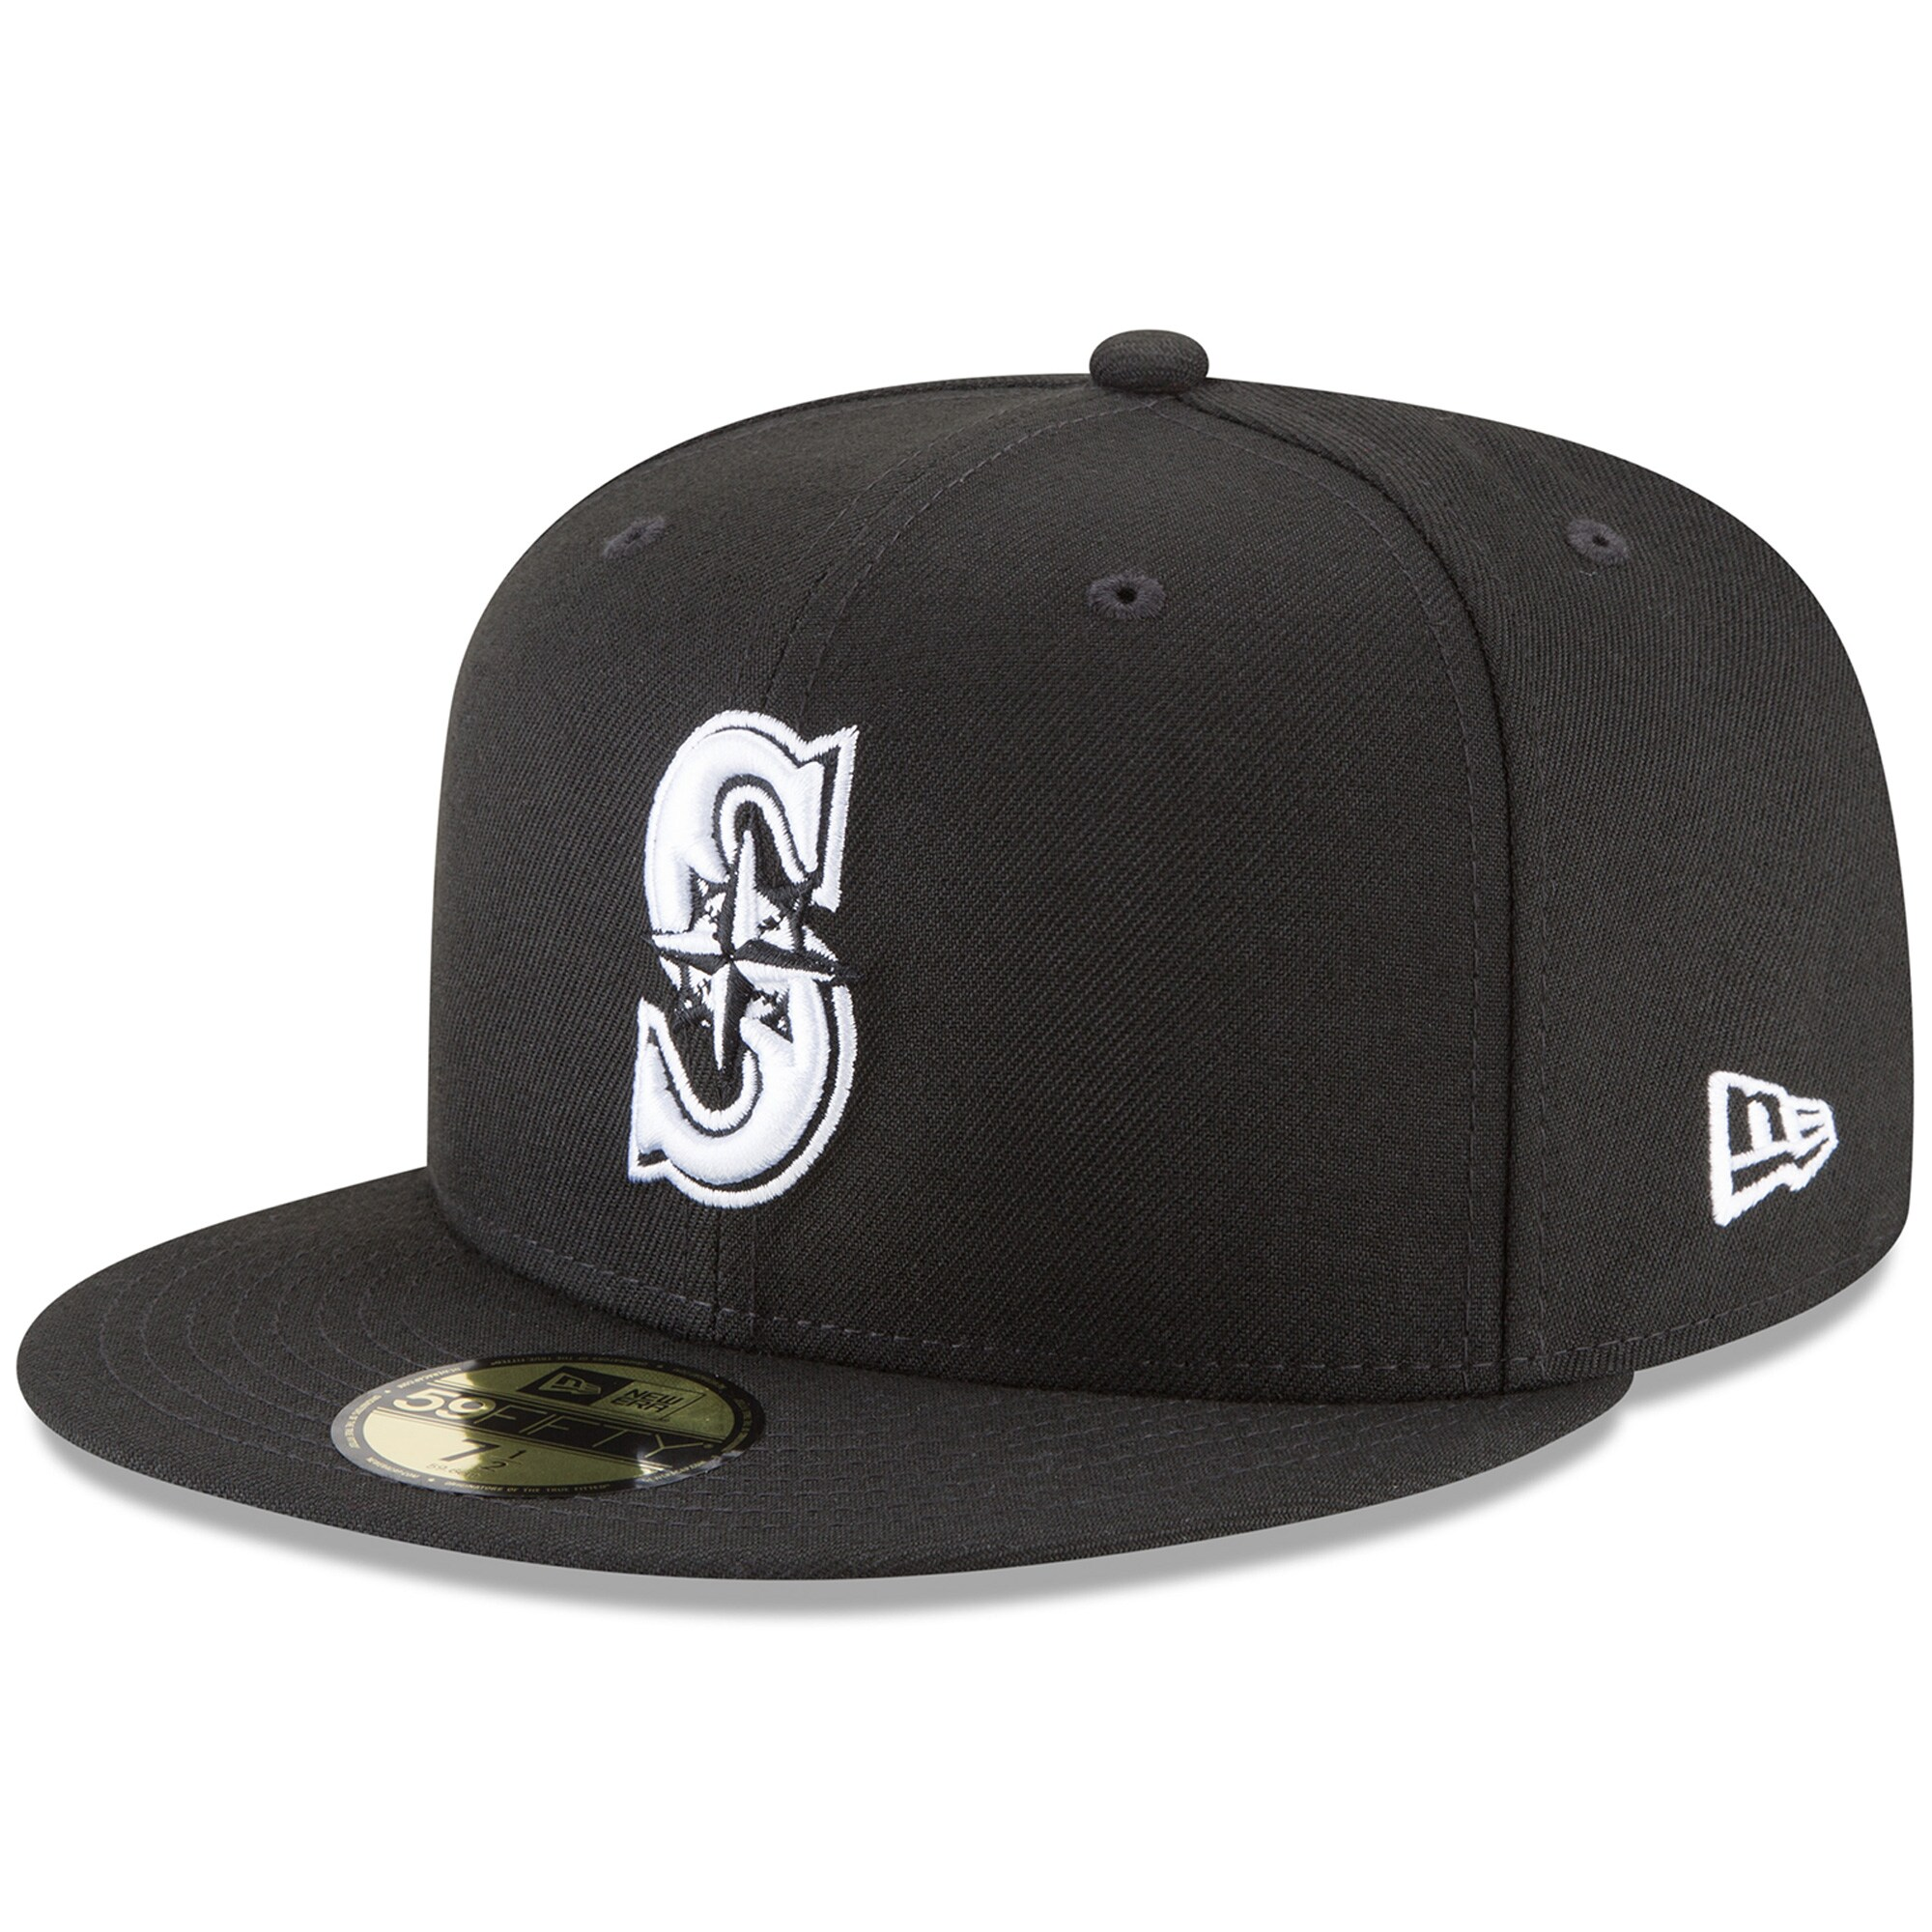 Seattle Mariners New Era 59FIFTY Fitted Hat - Black